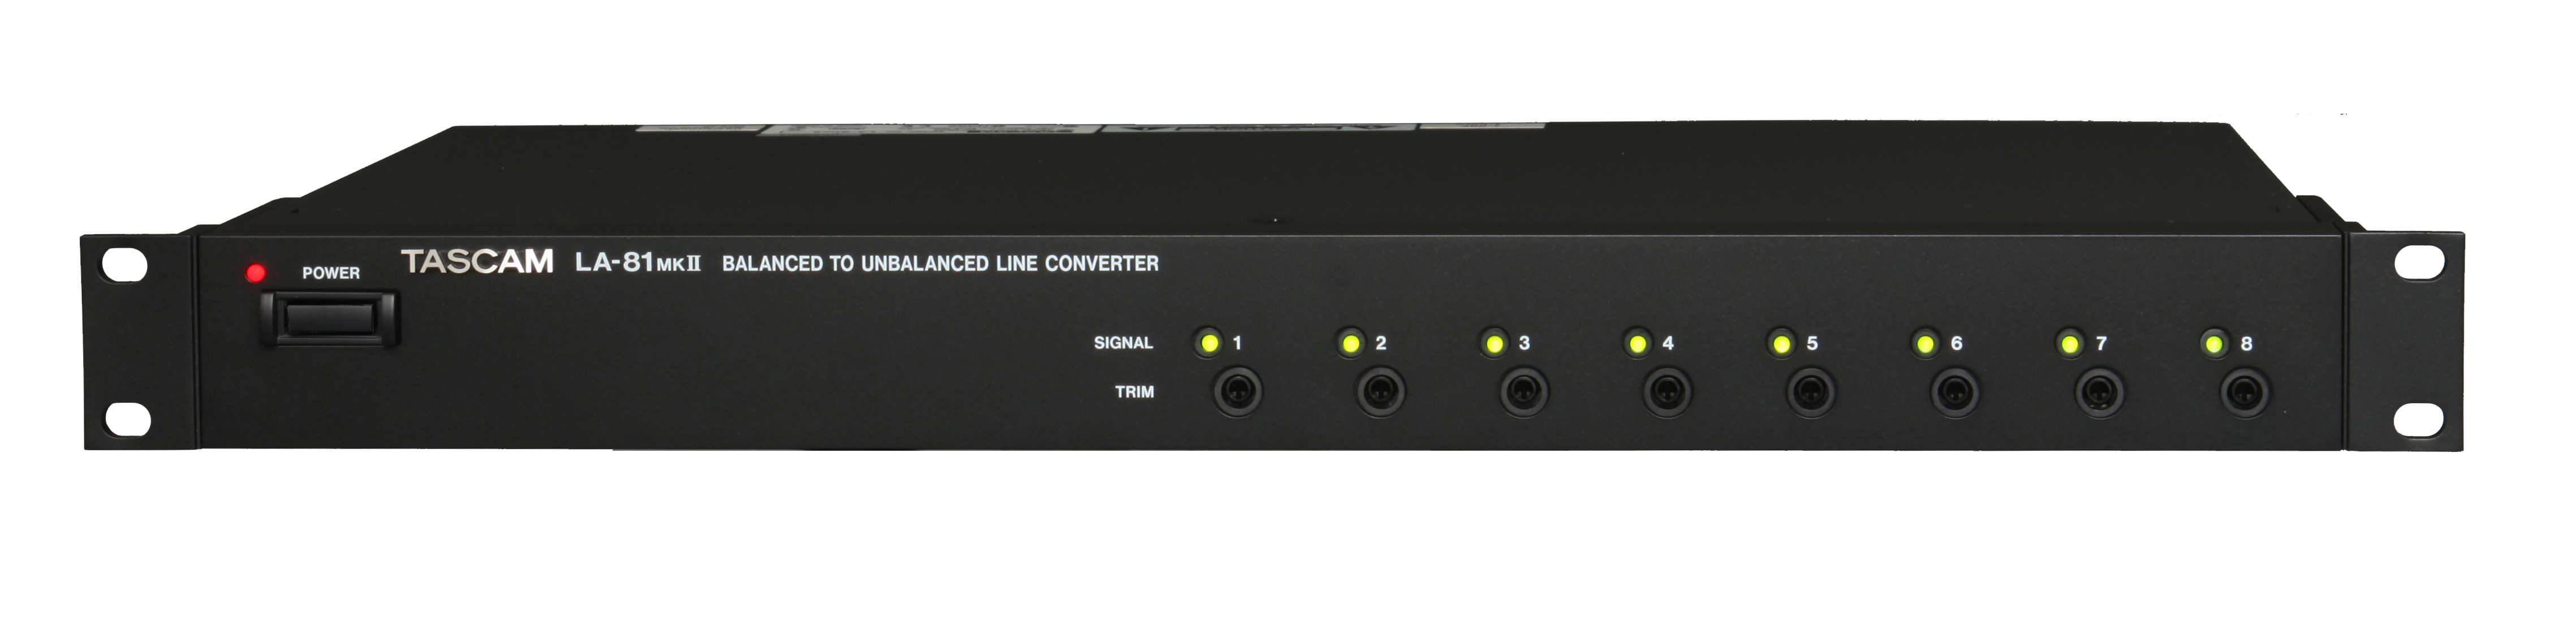 BAL TO UNBAL LINE AMP Tascam P